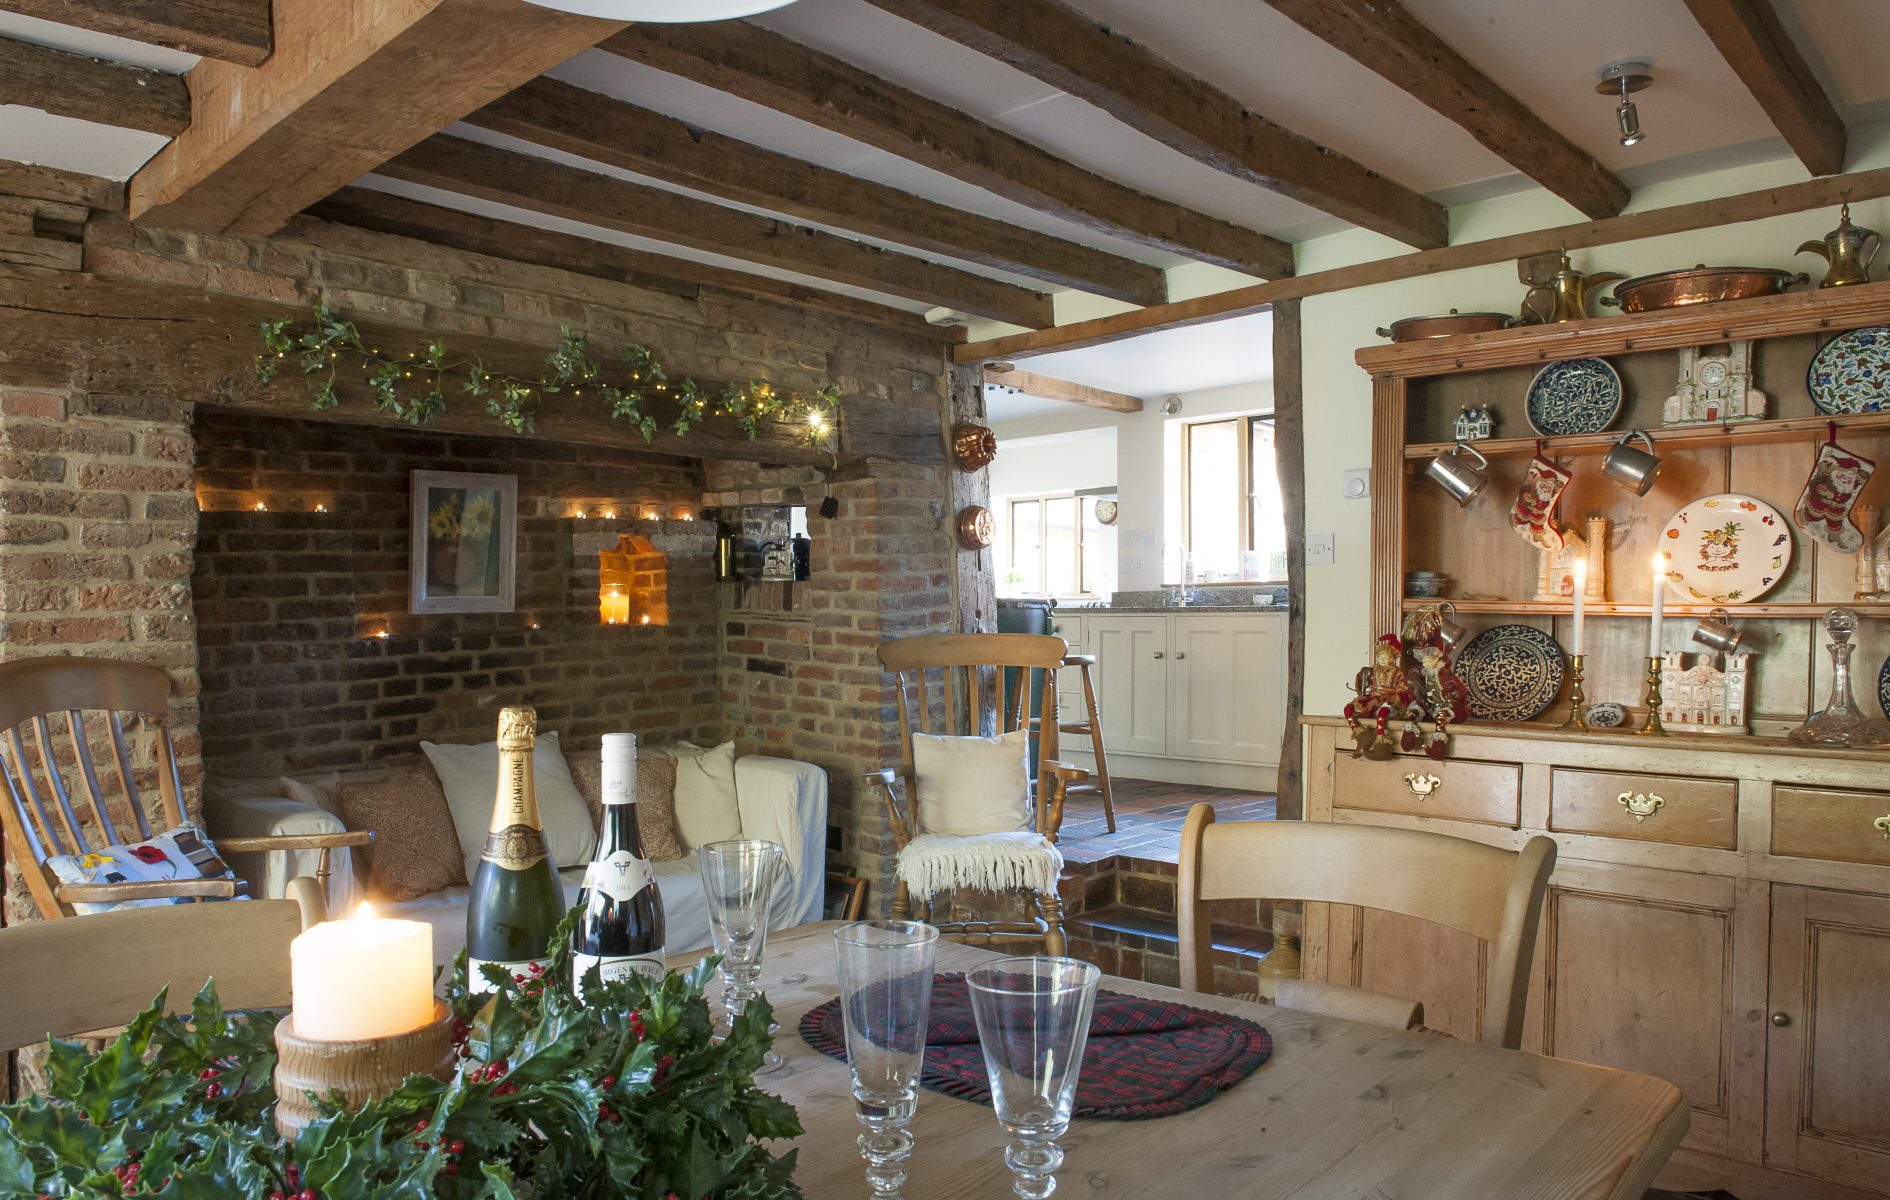 Focal point of the dining room is an impressive inglenook fireplace. Candles, hidden in the ledges and alcoves, add a relaxed amber glow to the room